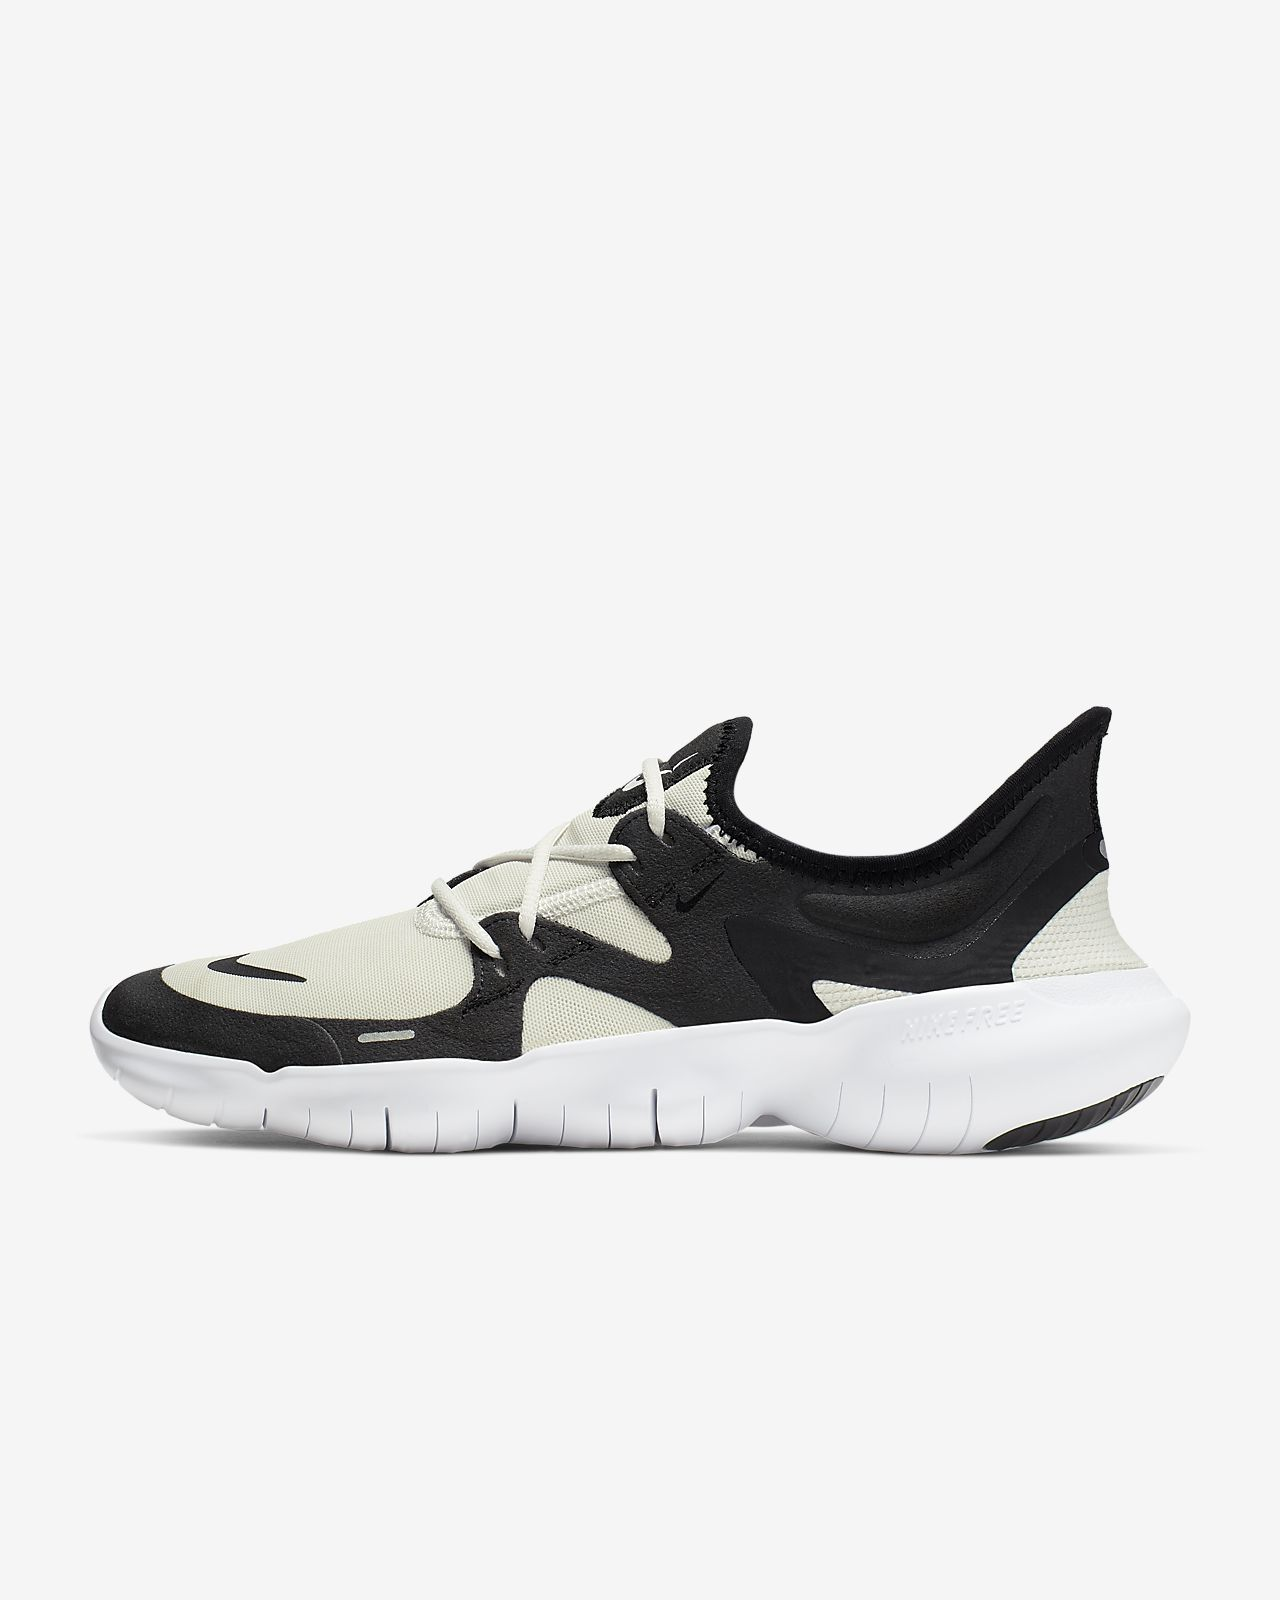 Nike Free RN 5.0 Women's Running Shoe